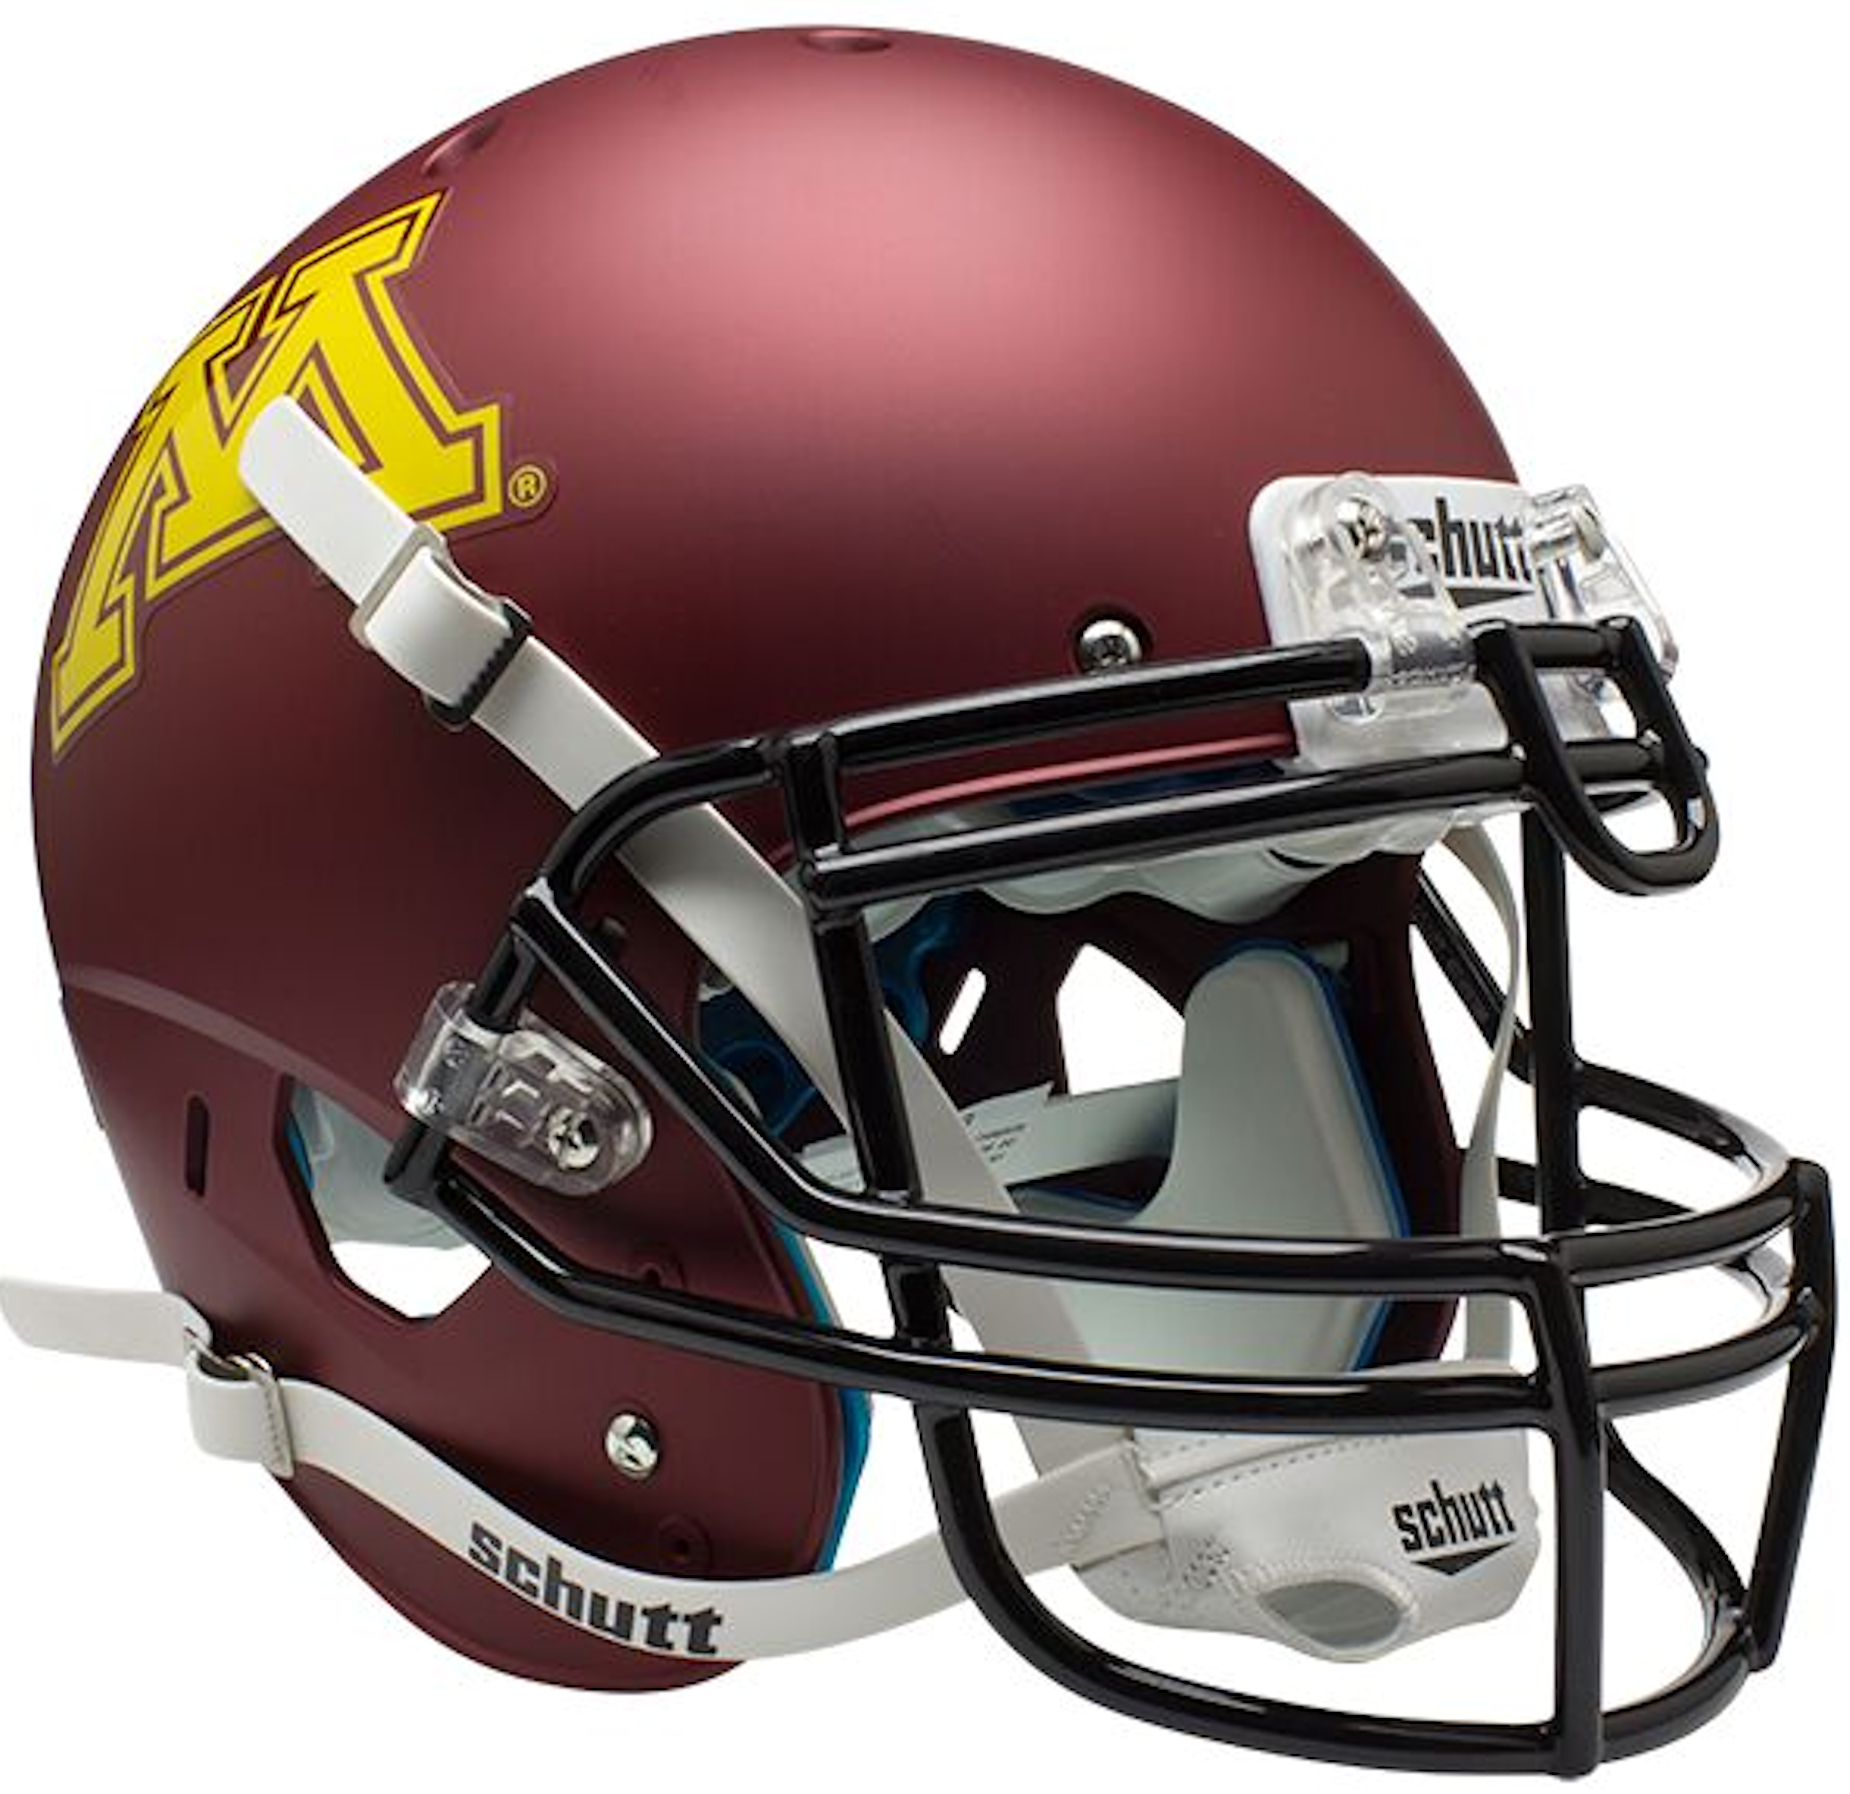 Minnesota Golden Gophers Authentic College XP Football Helmet Schutt <B>Matte</B>